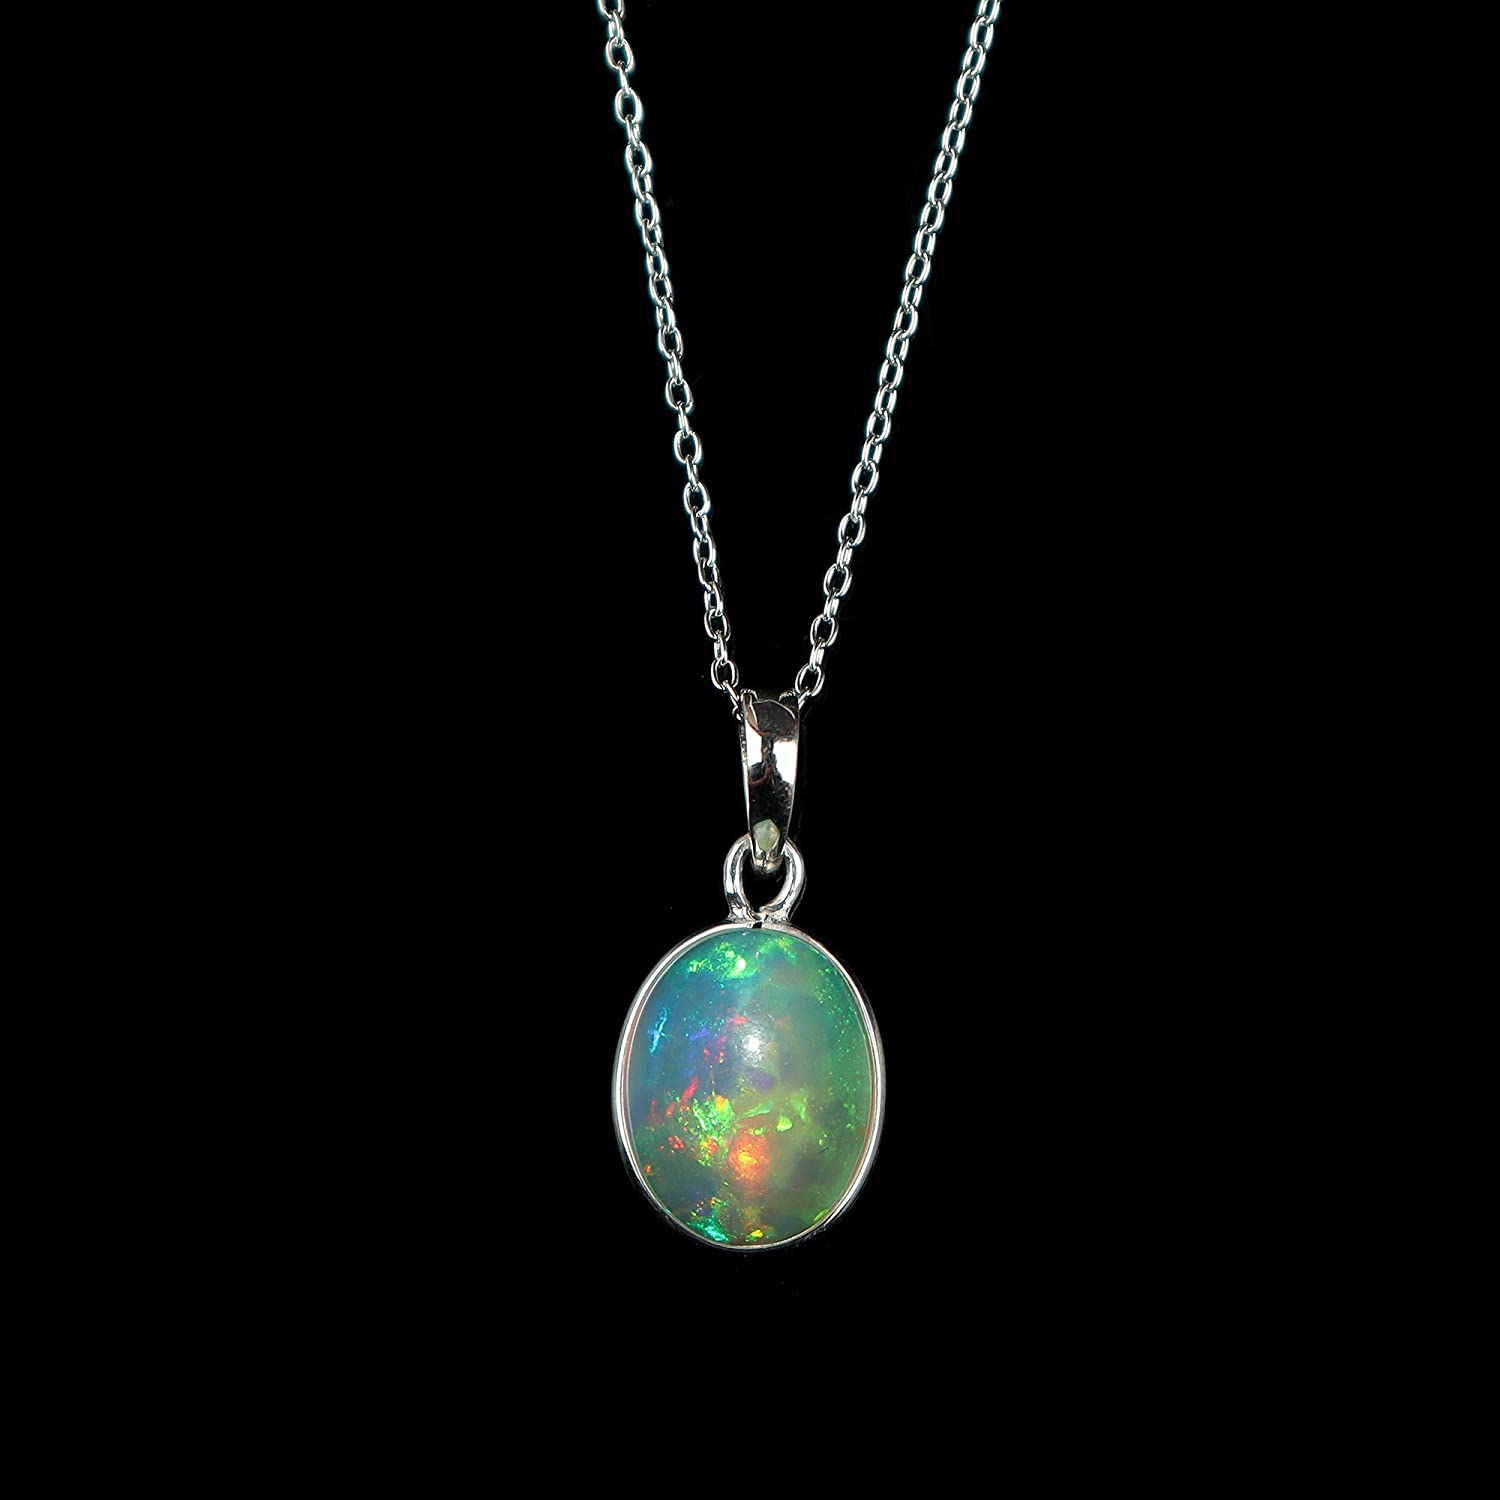 925 Sterling Silver Gold Plated Faceted Bezel Set Natural White Ethiopian Fire Opal Necklace October Birthstone Necklace Gift for Friend